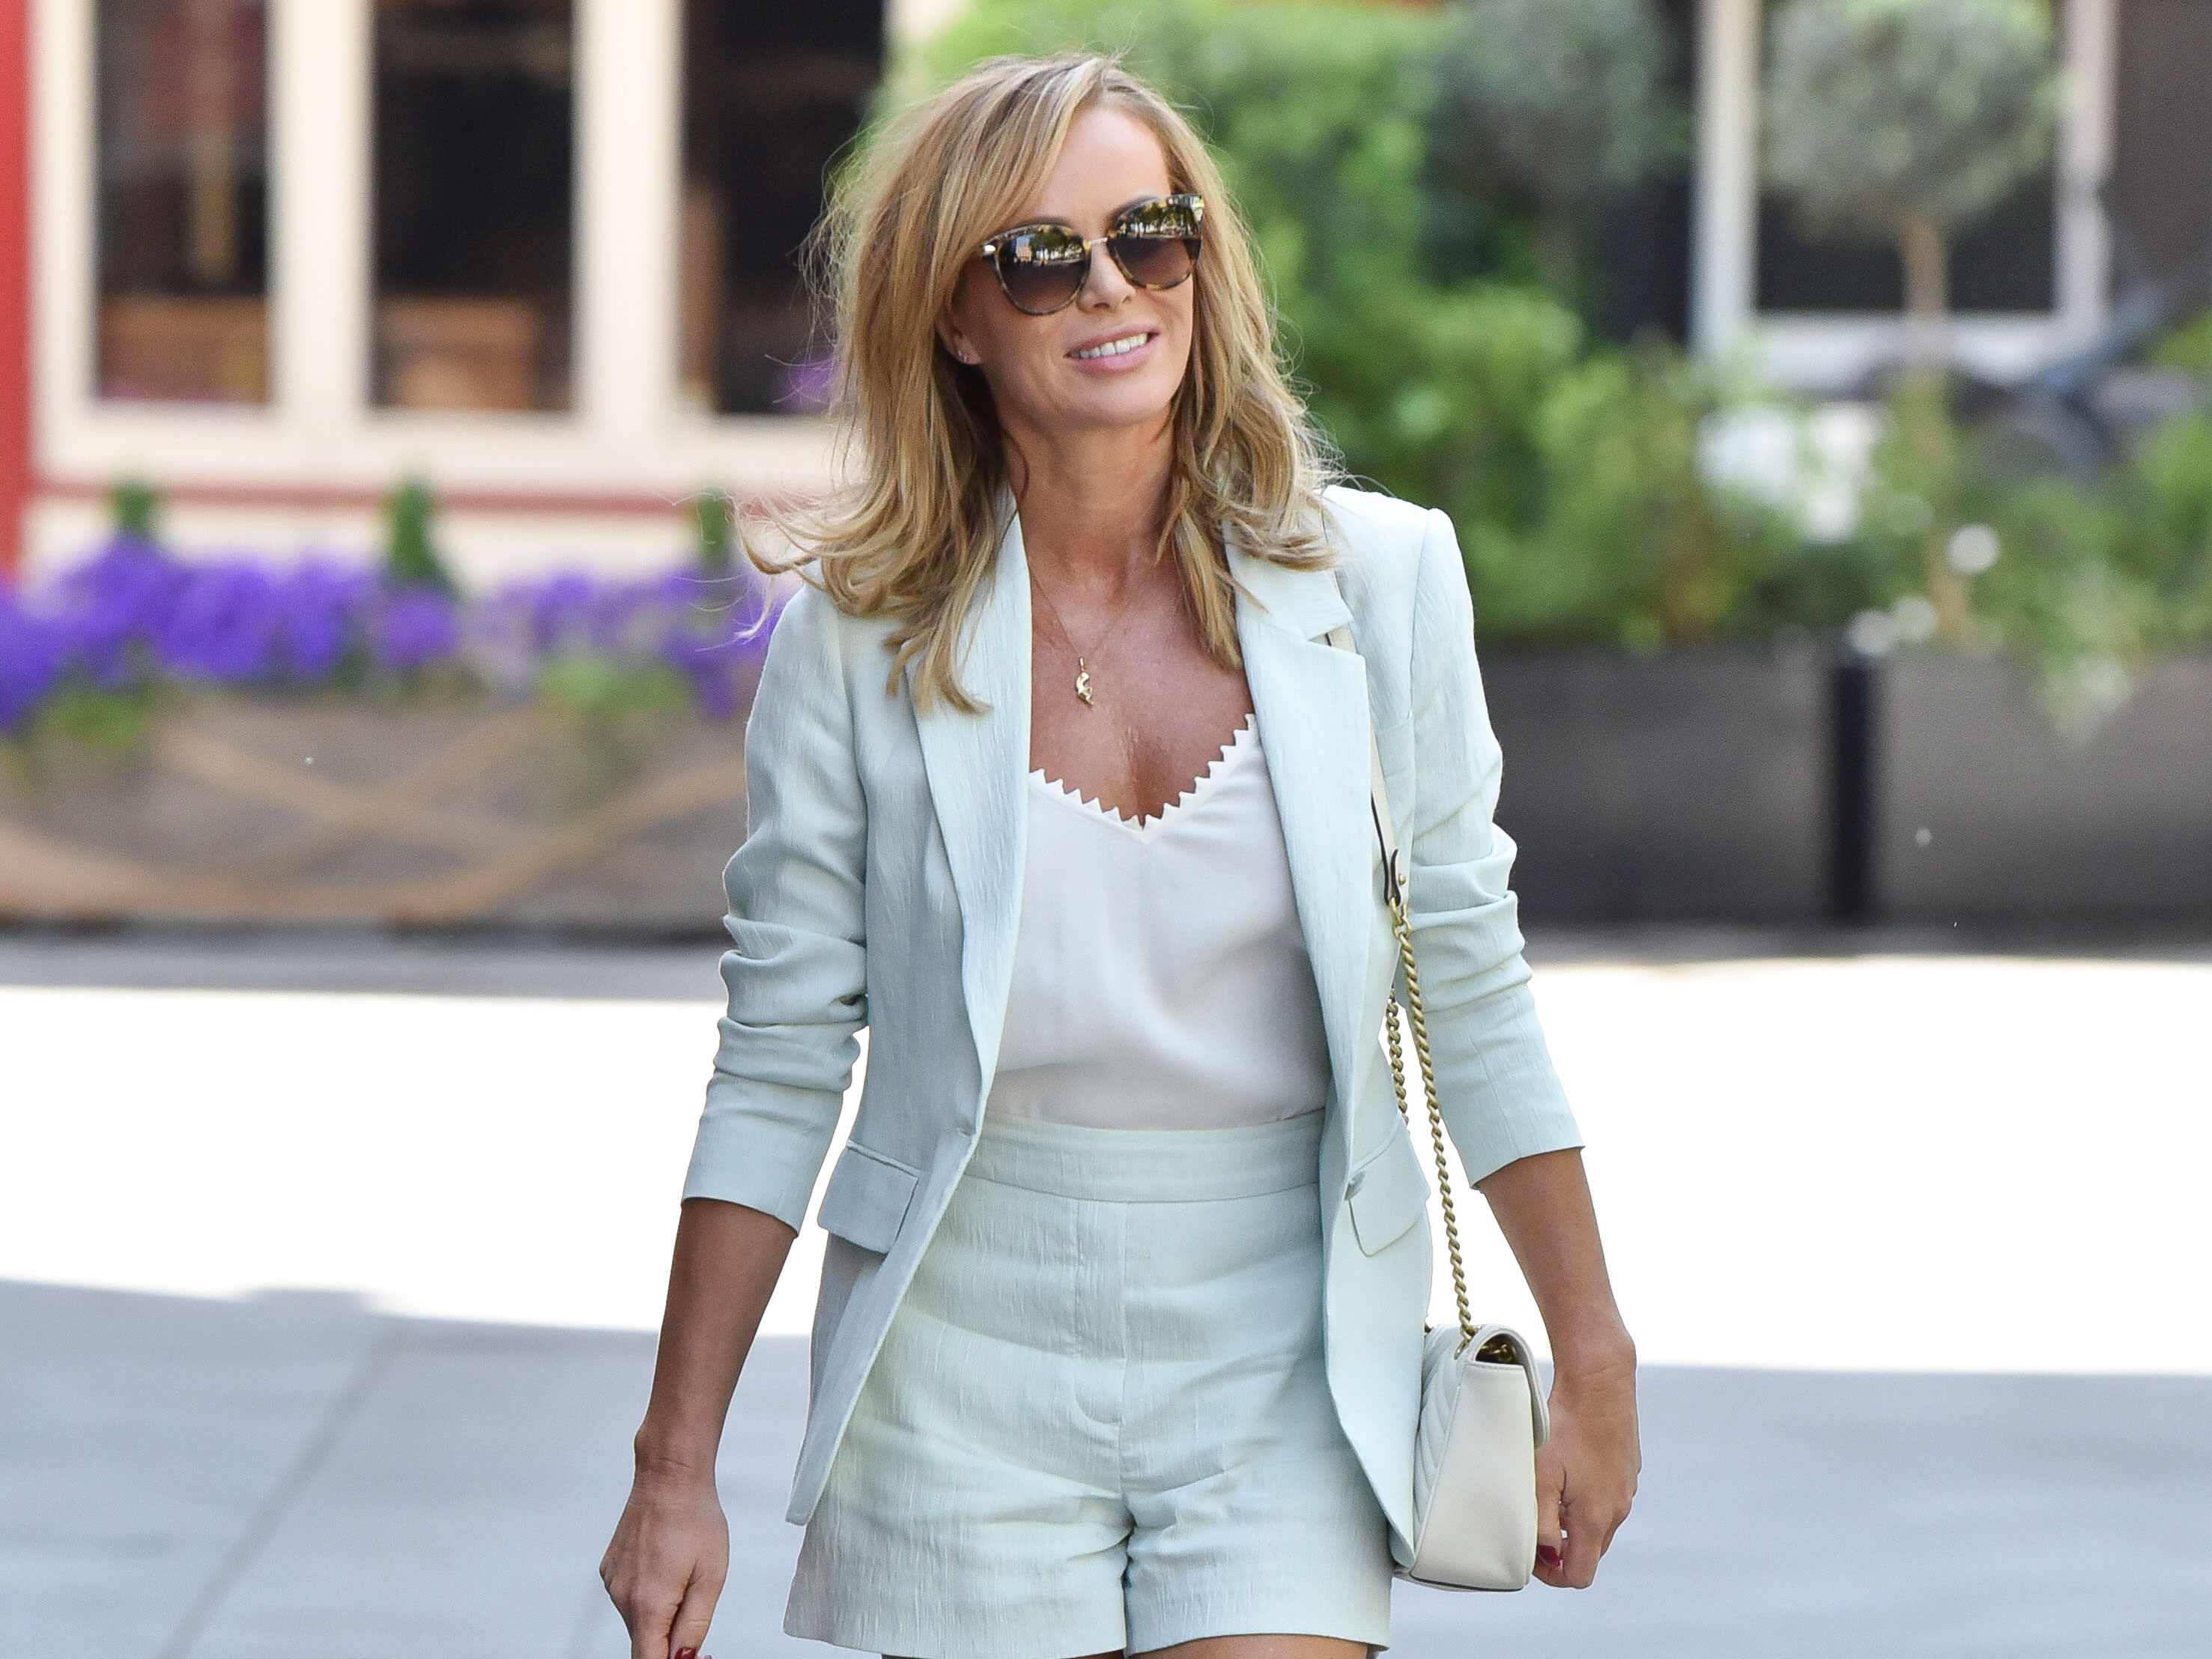 Fans noticed something seriously strange in Amanda Holden's latest family photo